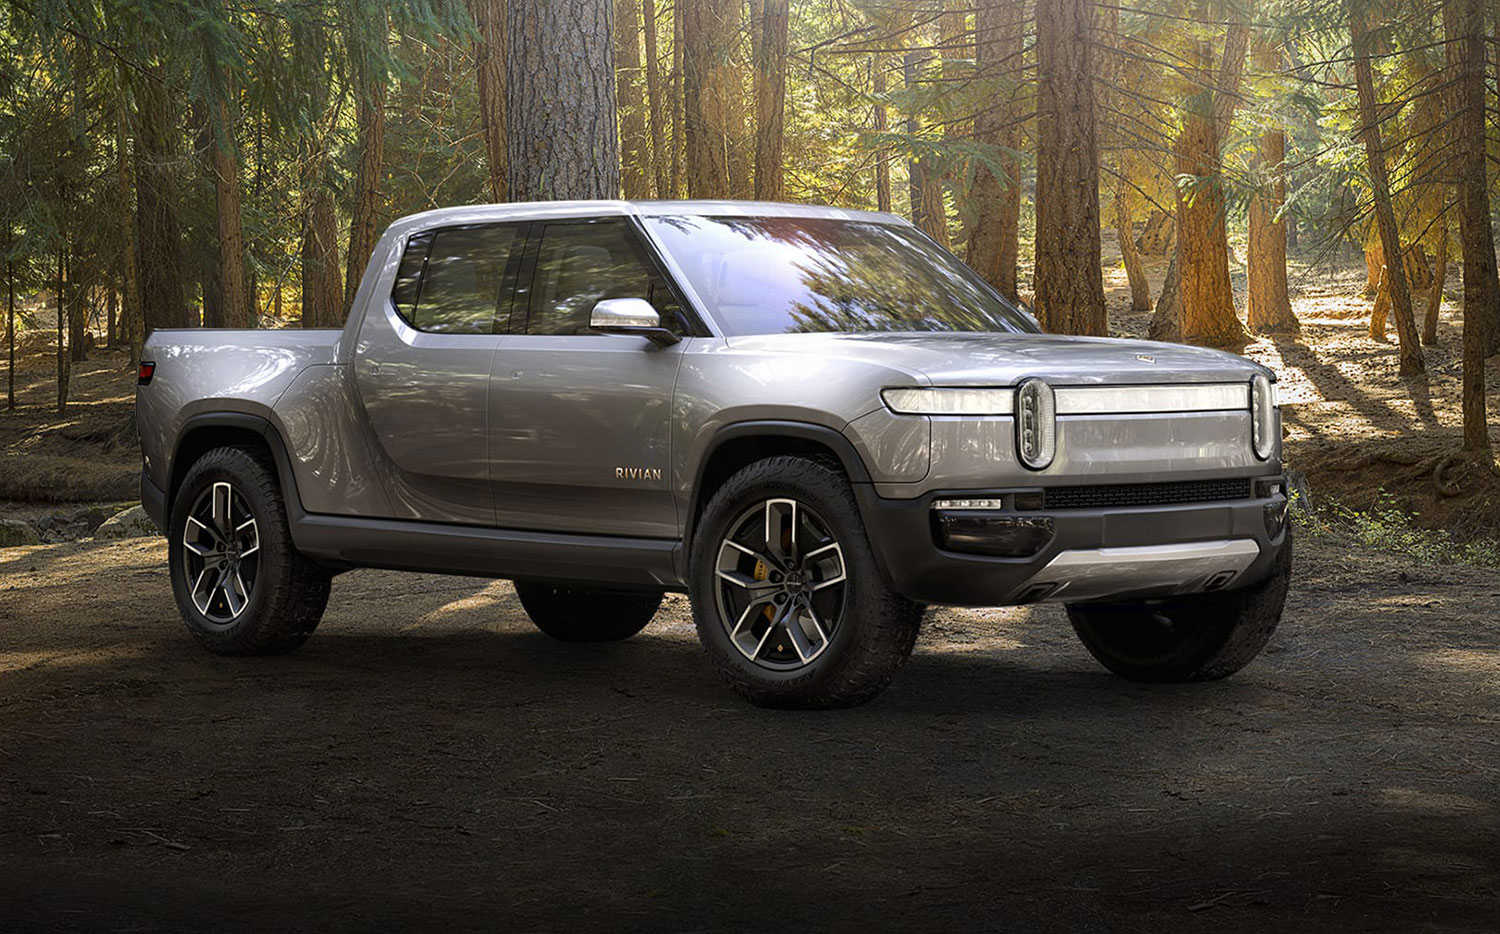 Rivian S Full Electric Pickup Truck Suv Get You To The Trail Back With Zero Emissions